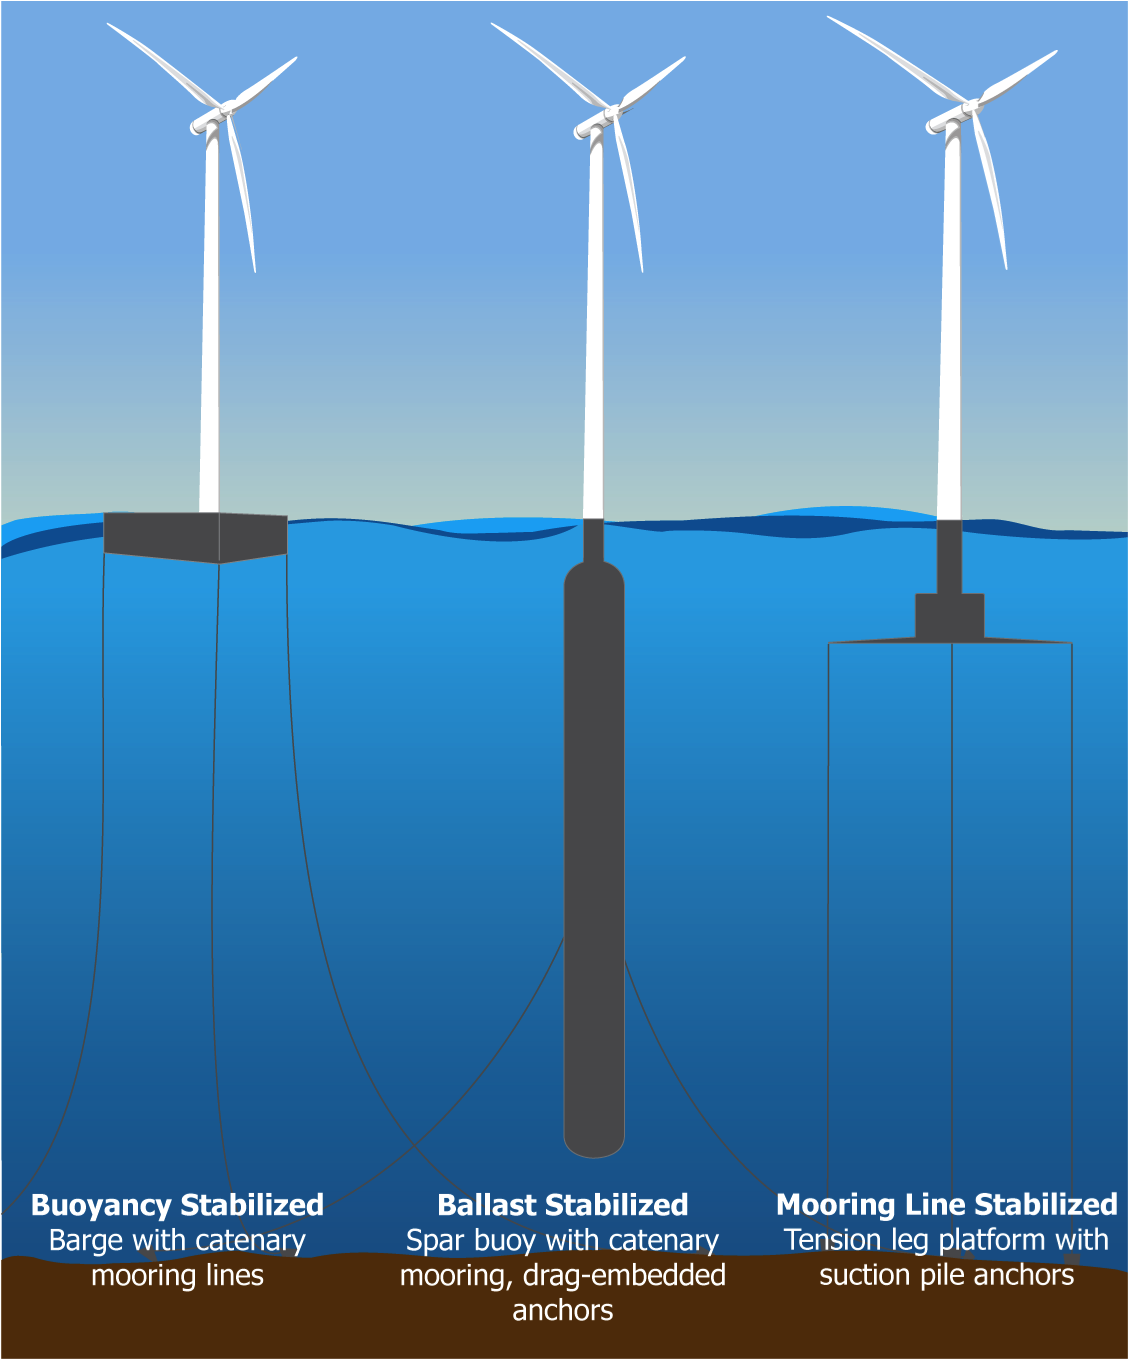 OFF SHORE WIND ENERGY_Viable Renewable Energy Source for